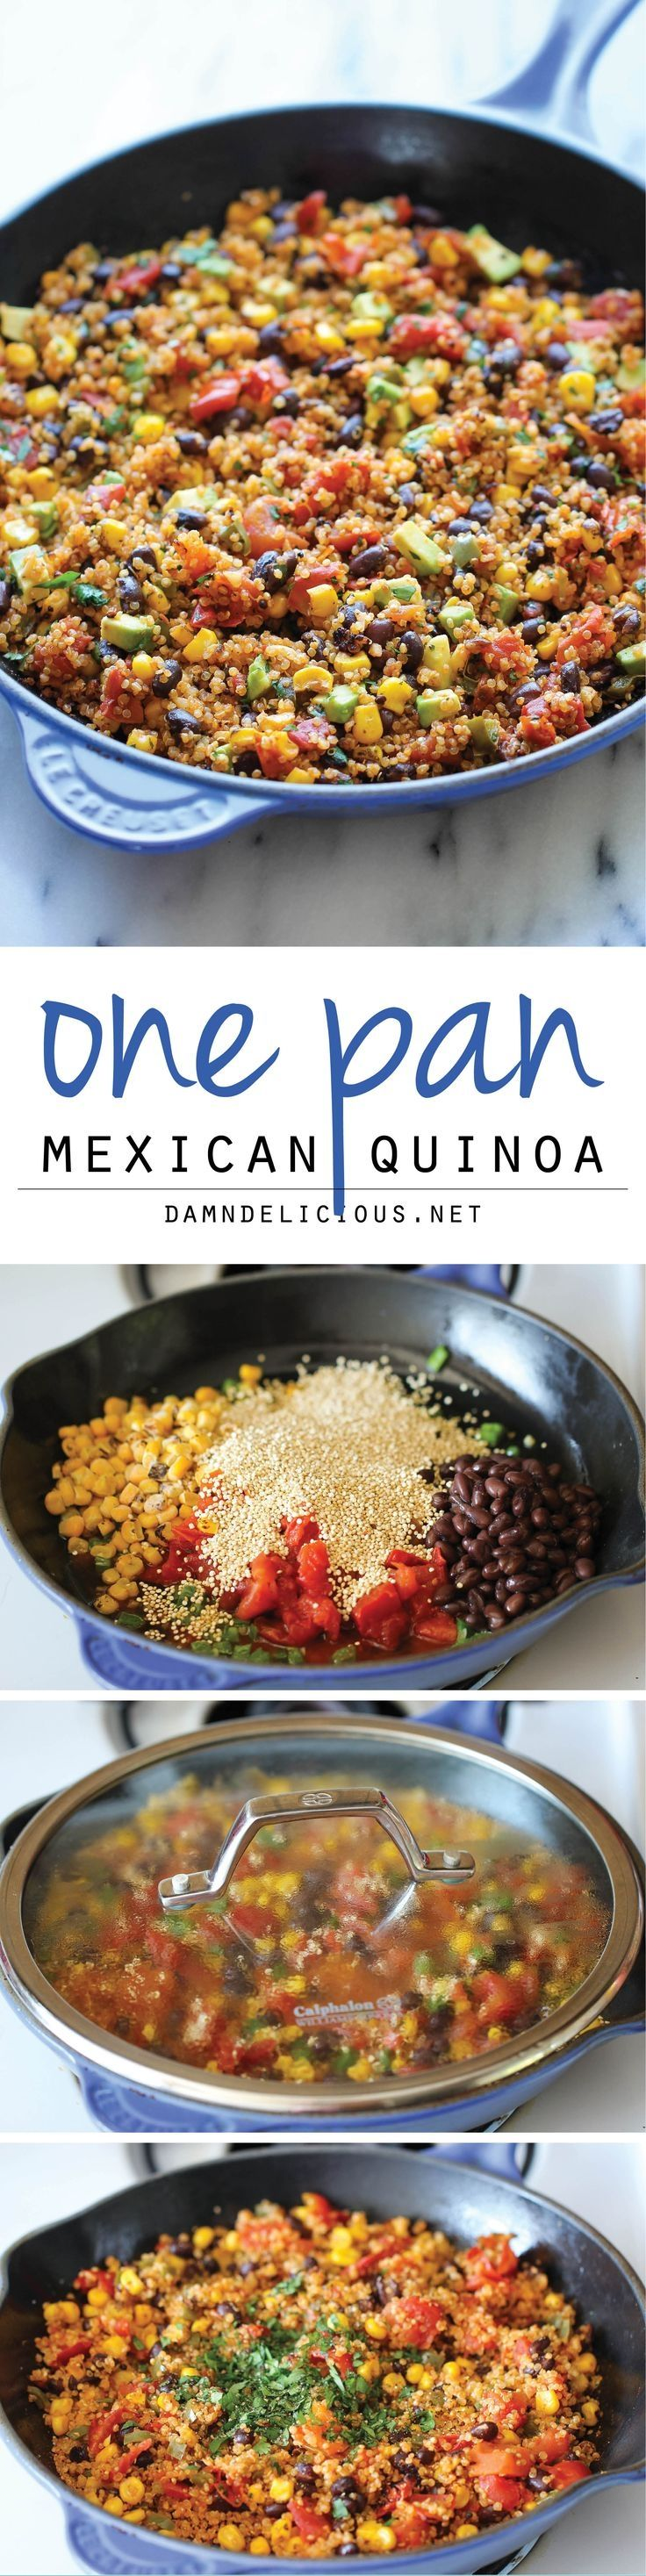 One Pan Mexican Quinoa- tried and true this is so yummy! I like to add a little shrimp or chicken to make it a bulky meal